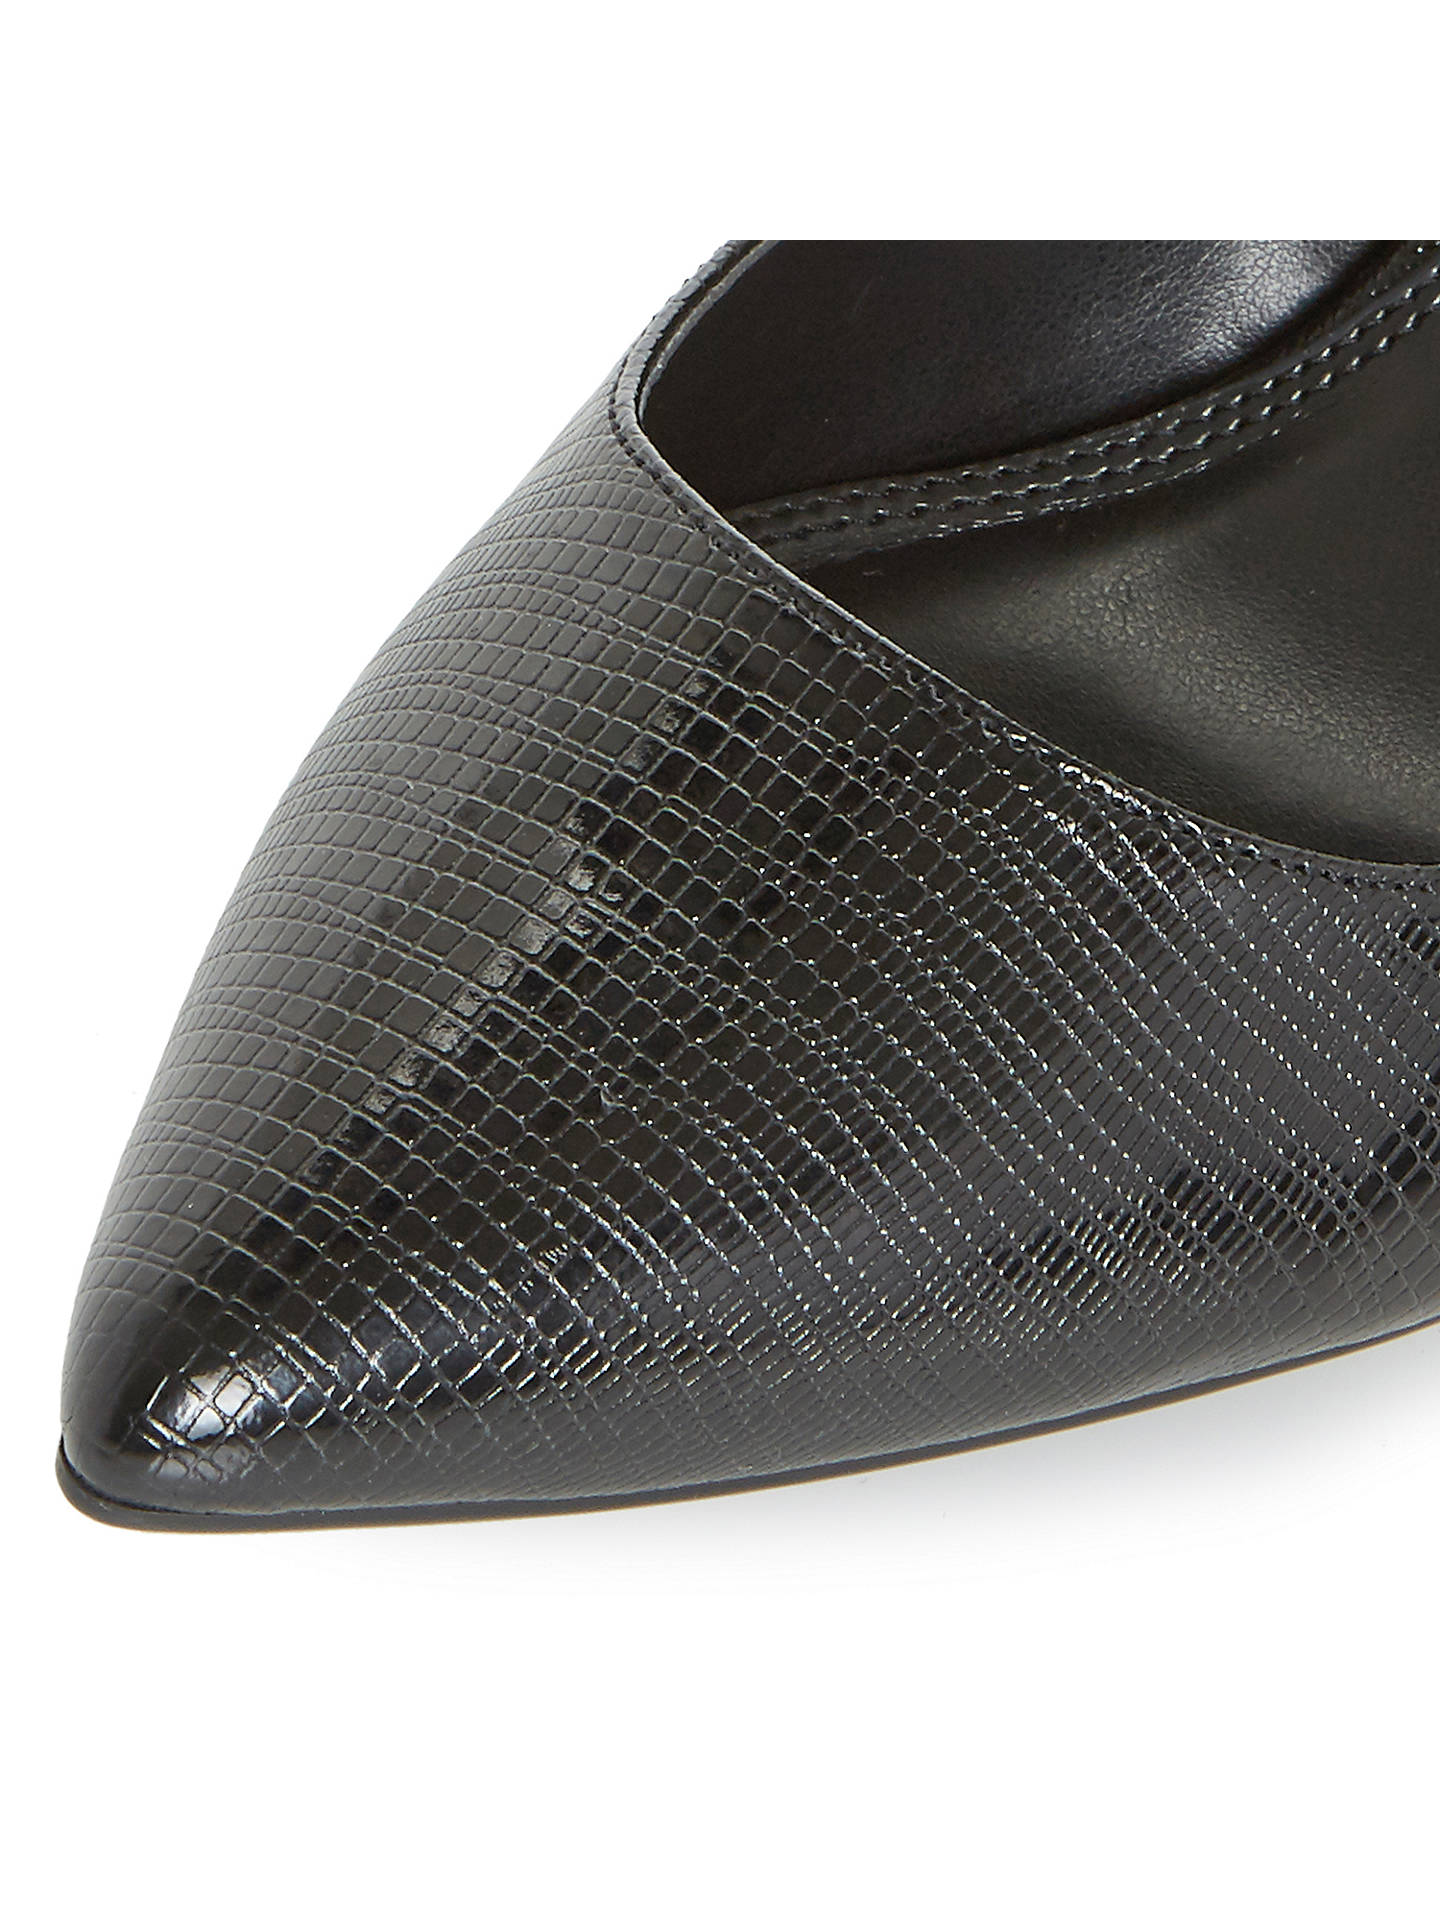 BuyDune Aeryn Stiletto Heeled Court Shoes, Black Reptile, 3 Online at johnlewis.com